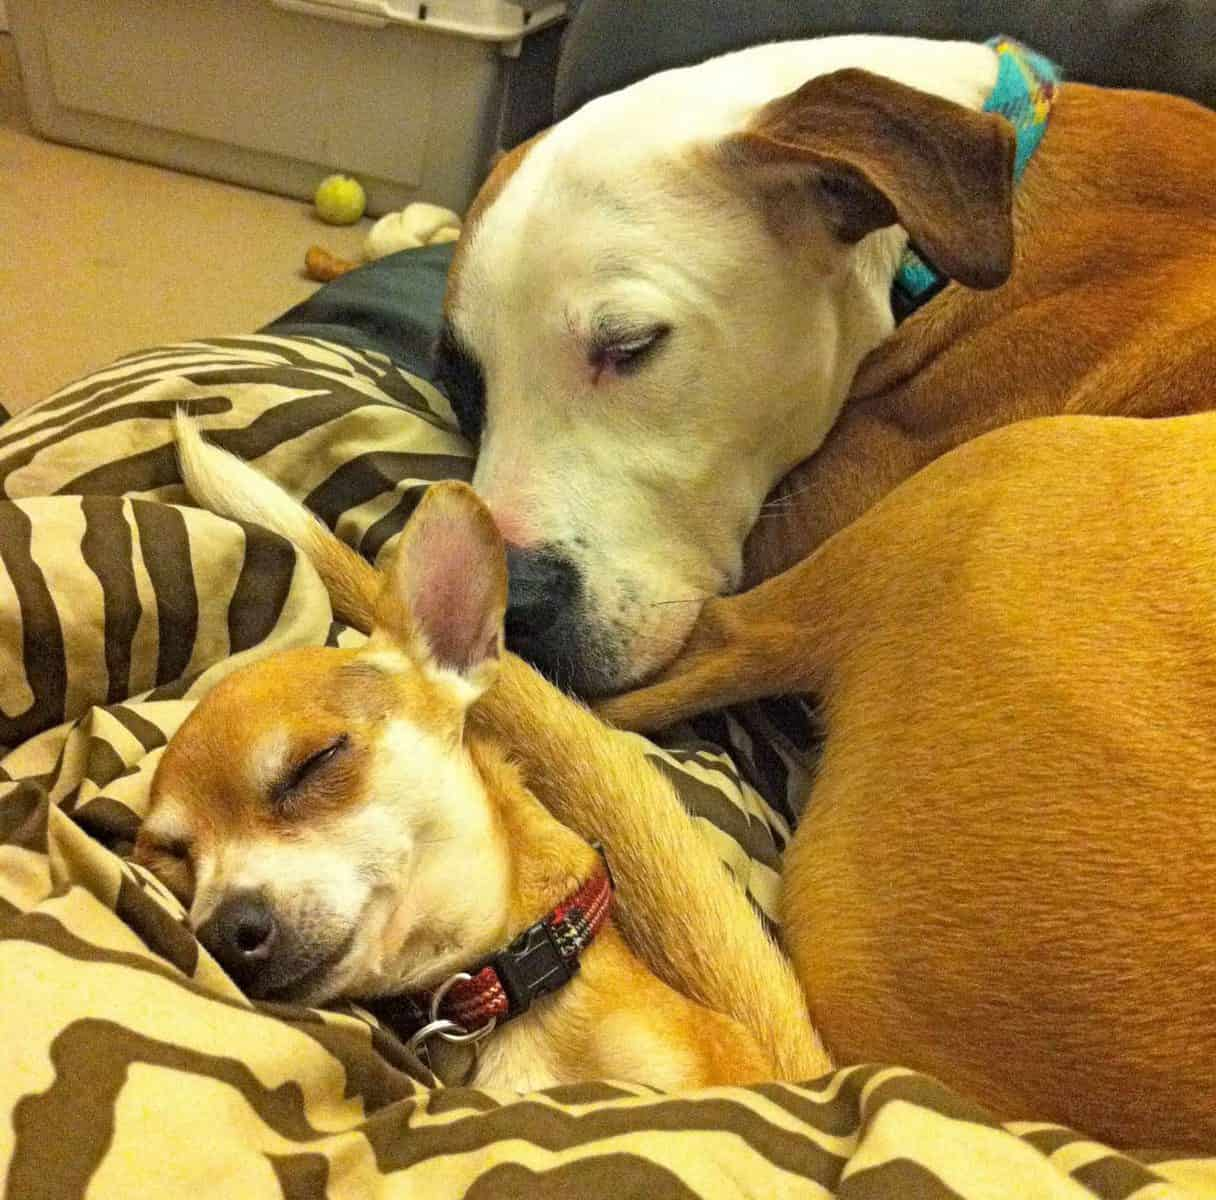 The Story Of Arnold And Dearheart, A Pit Bull And Chihuahua That Need A Home